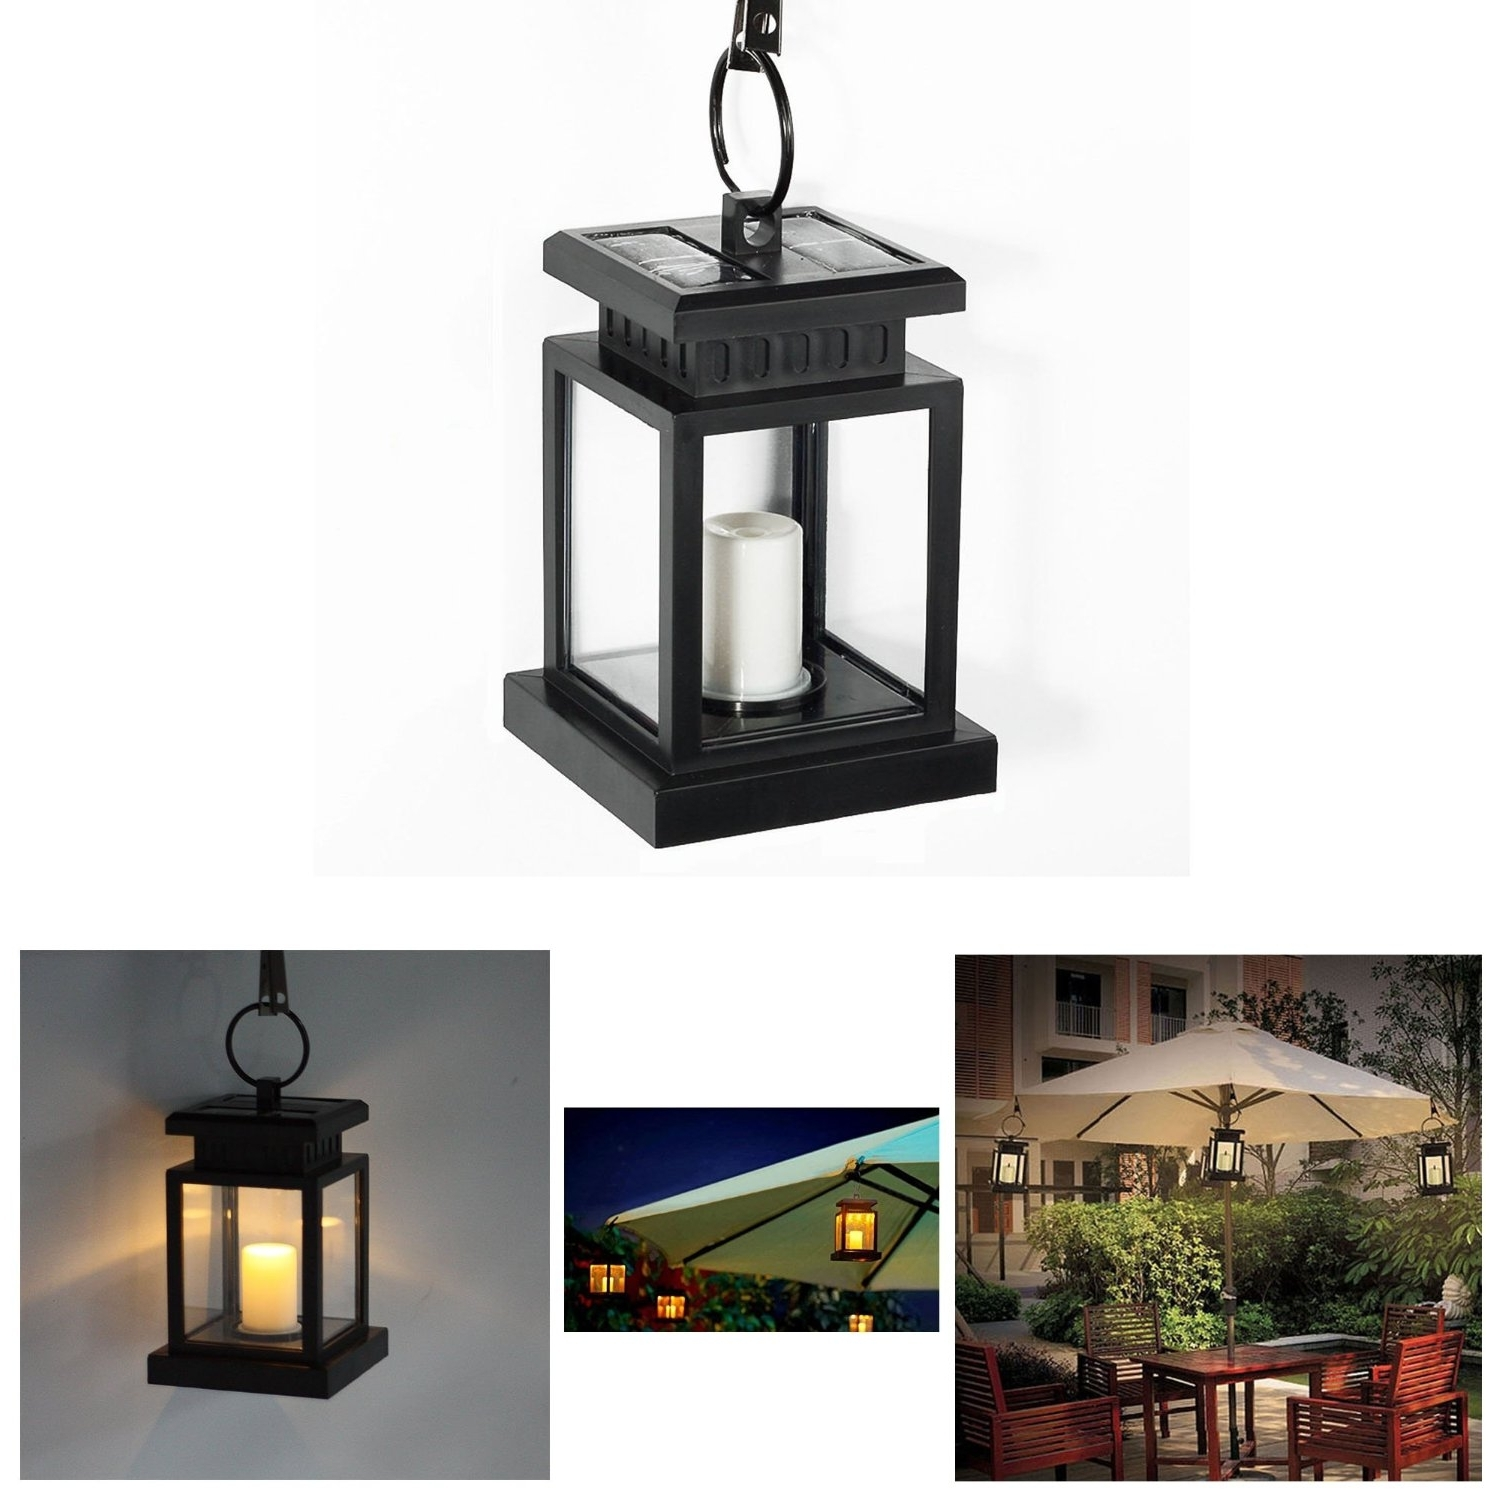 Most Recent Solar Powered Hanging Umbrella Lantern Candle Led Light With Clamp Pertaining To Outdoor Hanging Lanterns Candles (View 4 of 20)